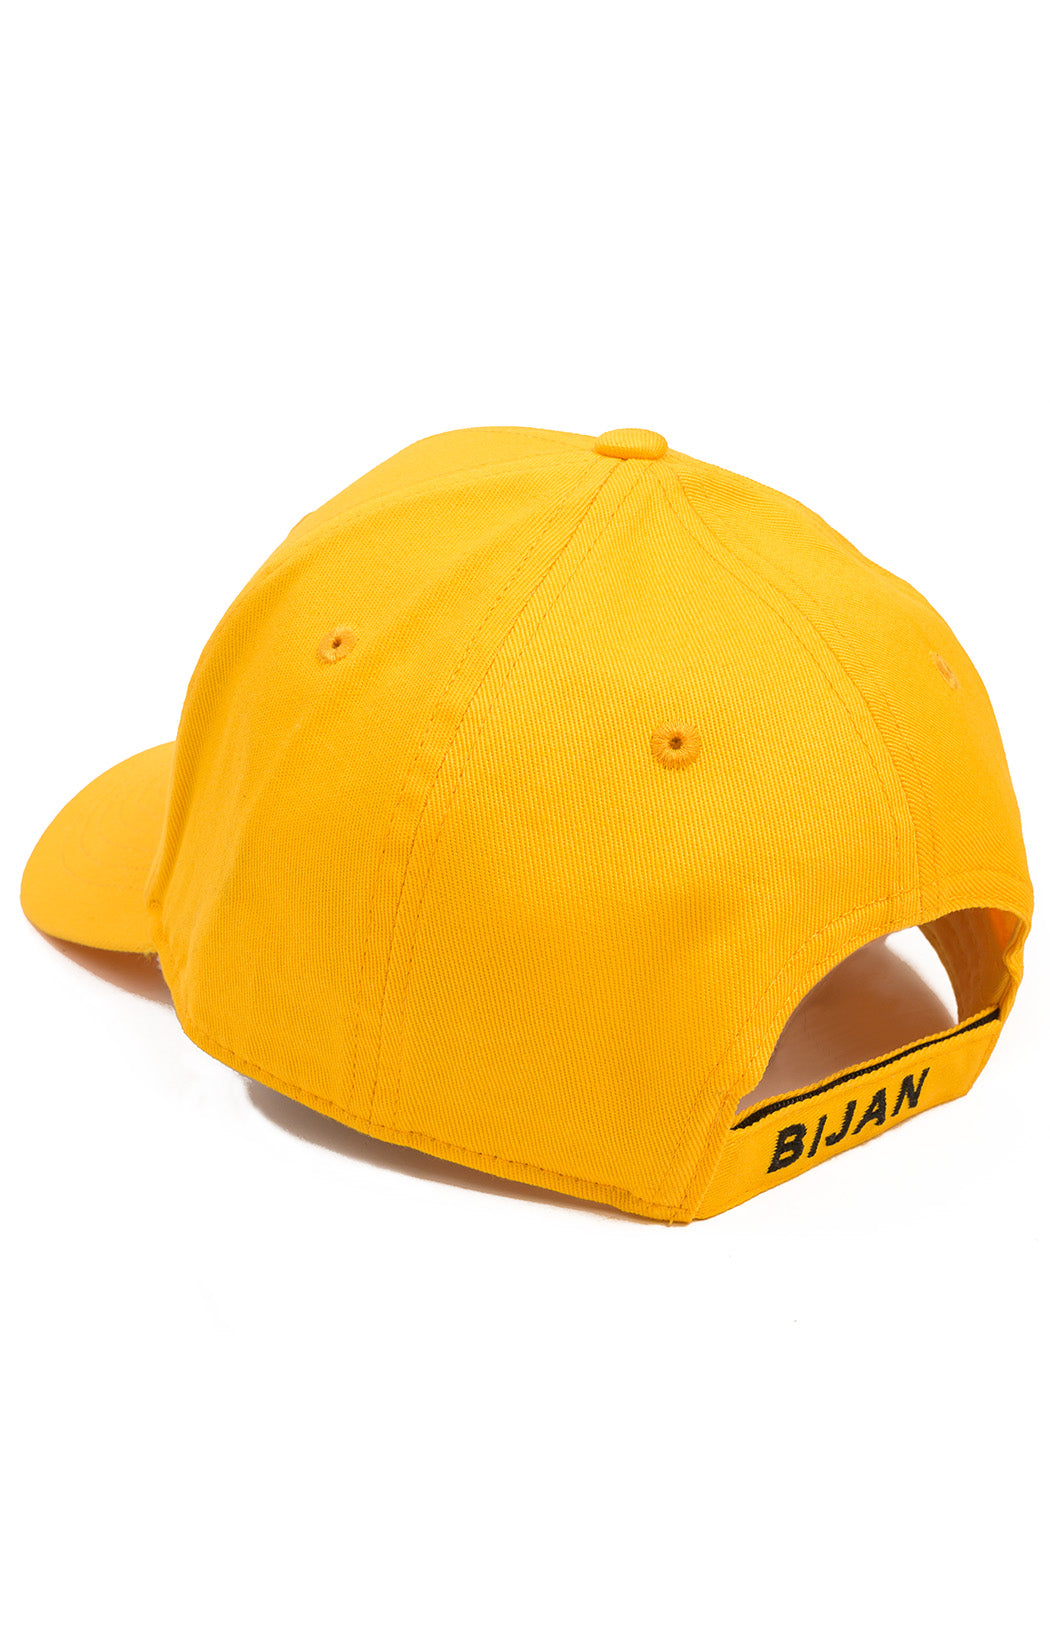 Back view of BIJAN Baseball hat